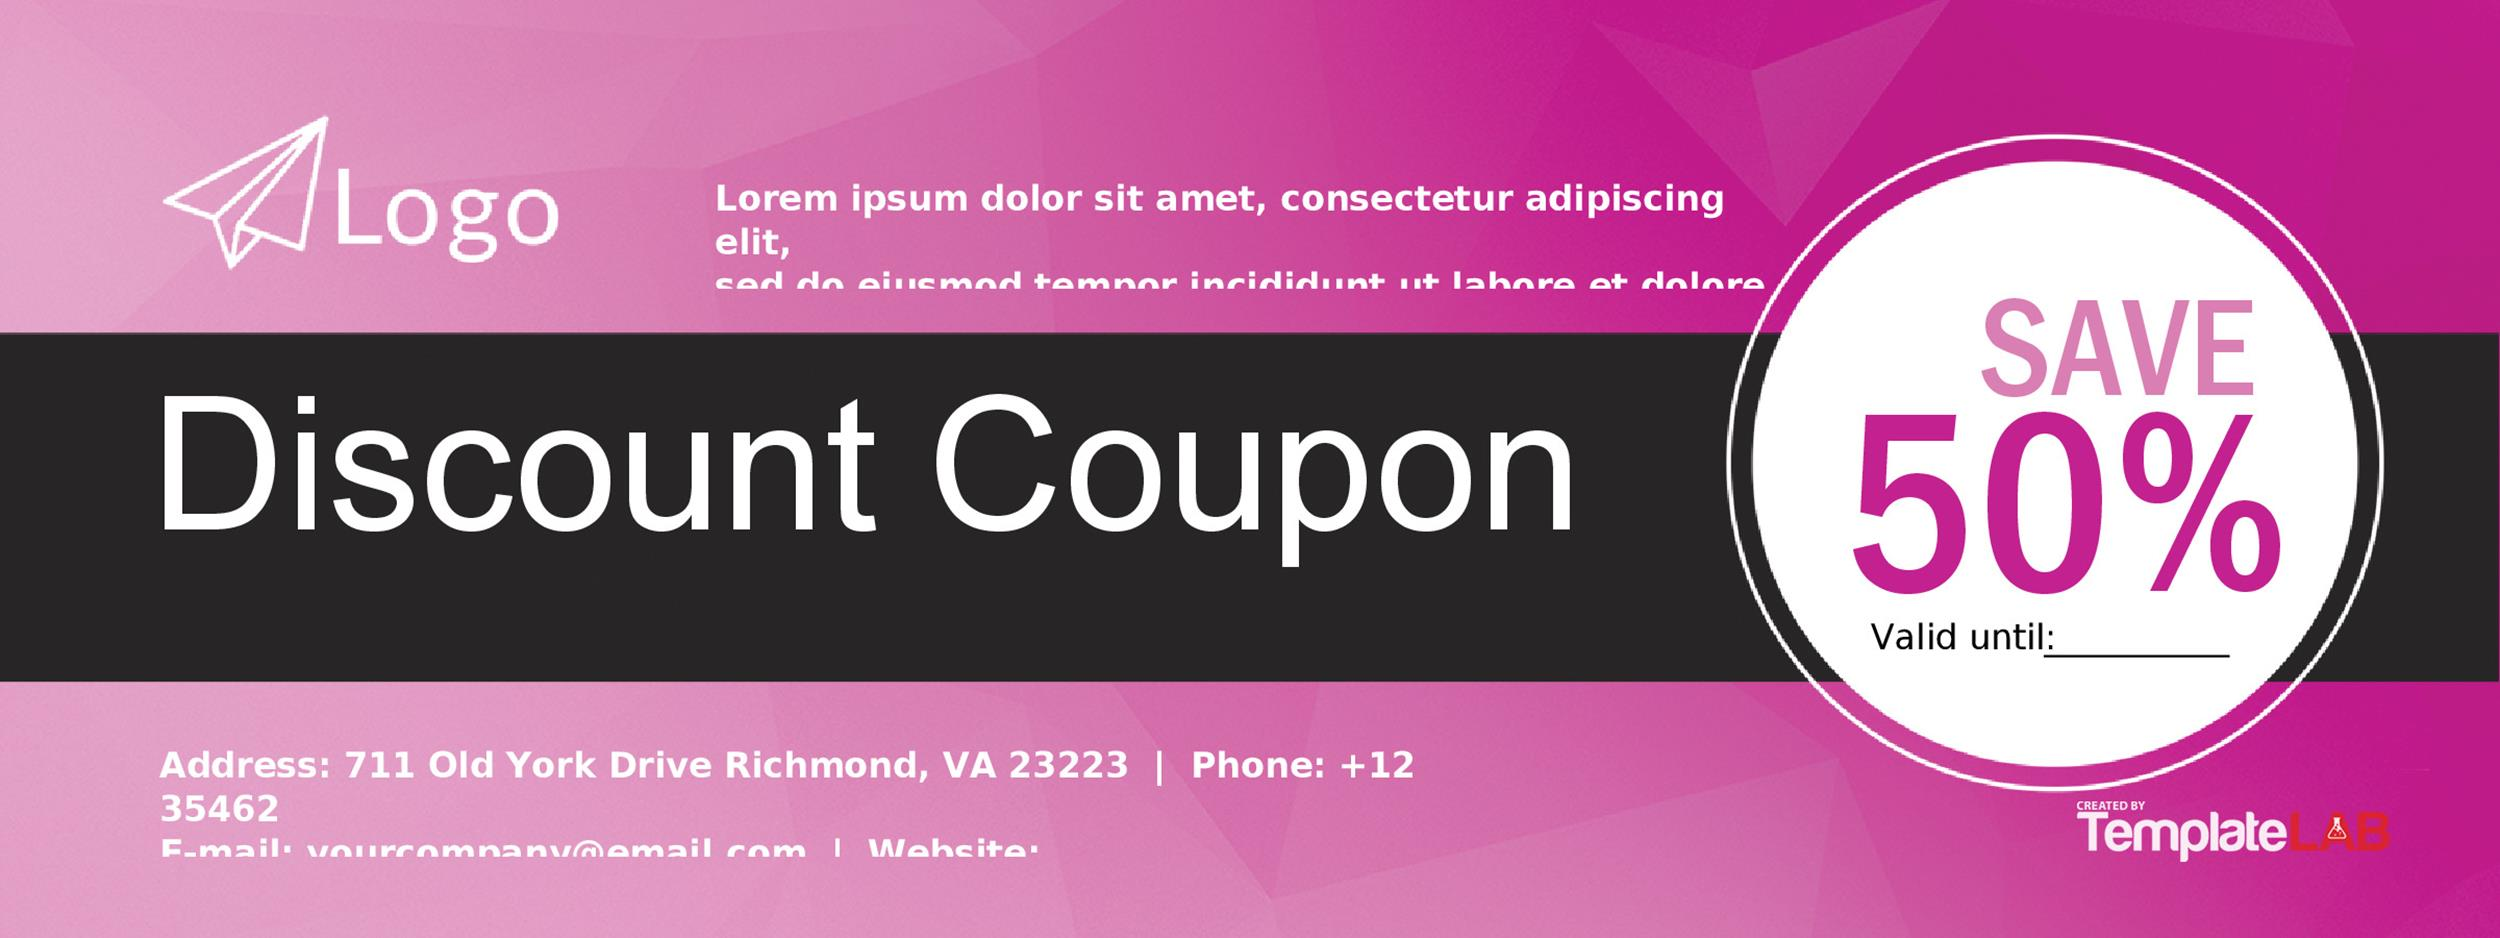 Free Coupon Template 5 (Word) – TemplateLab Exclusive